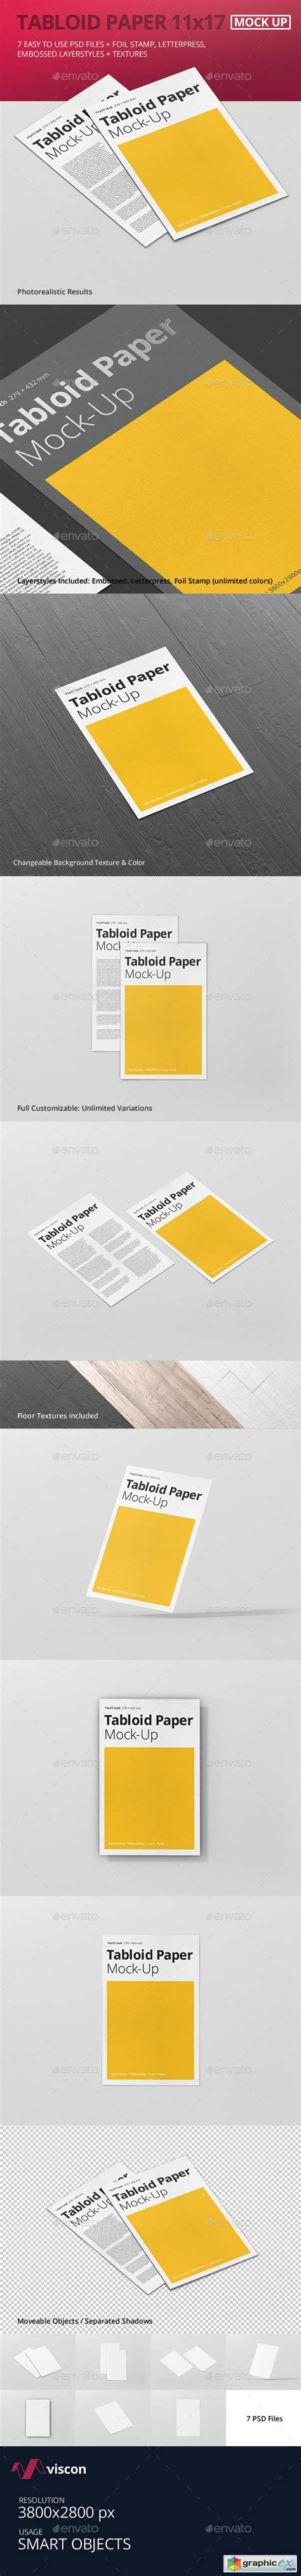 11x17 Poster Template Photoshop tabloid paper mock up 11x17 187 free vector stock